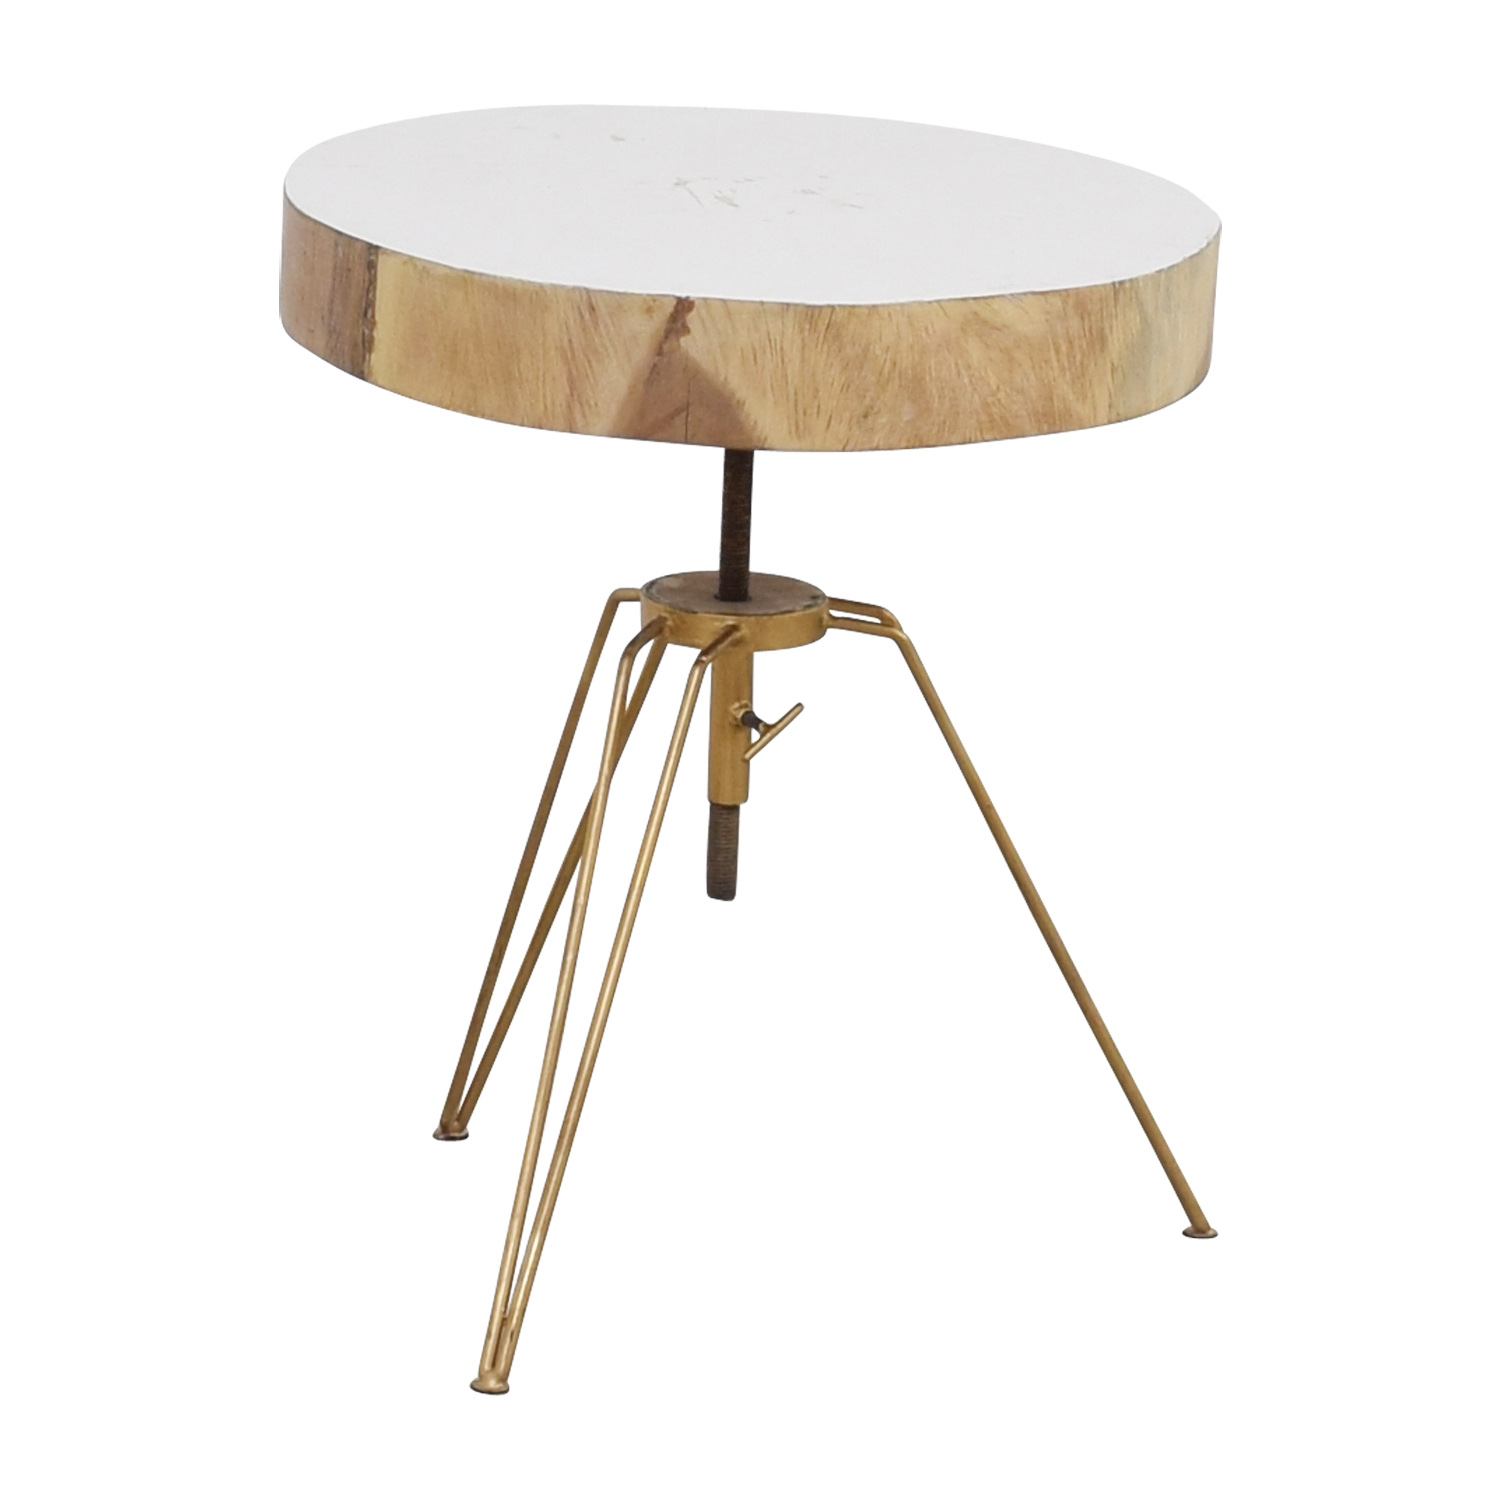 Biarritz Suar Biarritz Suar White Wood and Bronze Iron Accent Table Tables